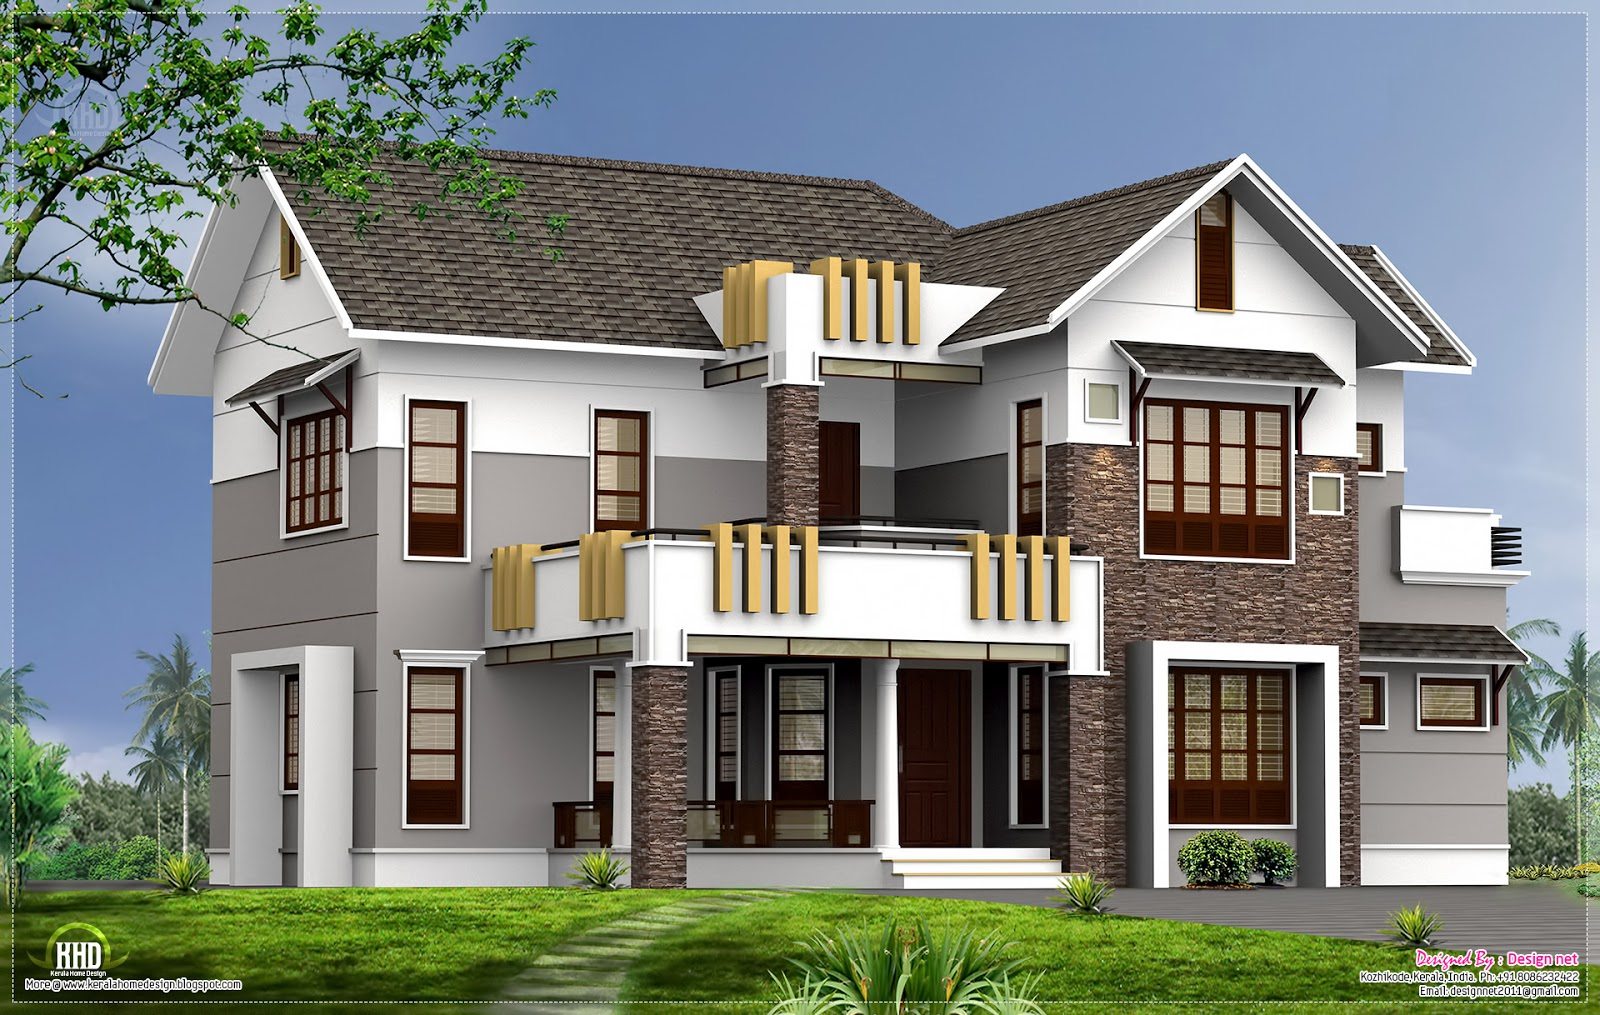 Architecture Design Kerala Model kerala home design image | home design ideas